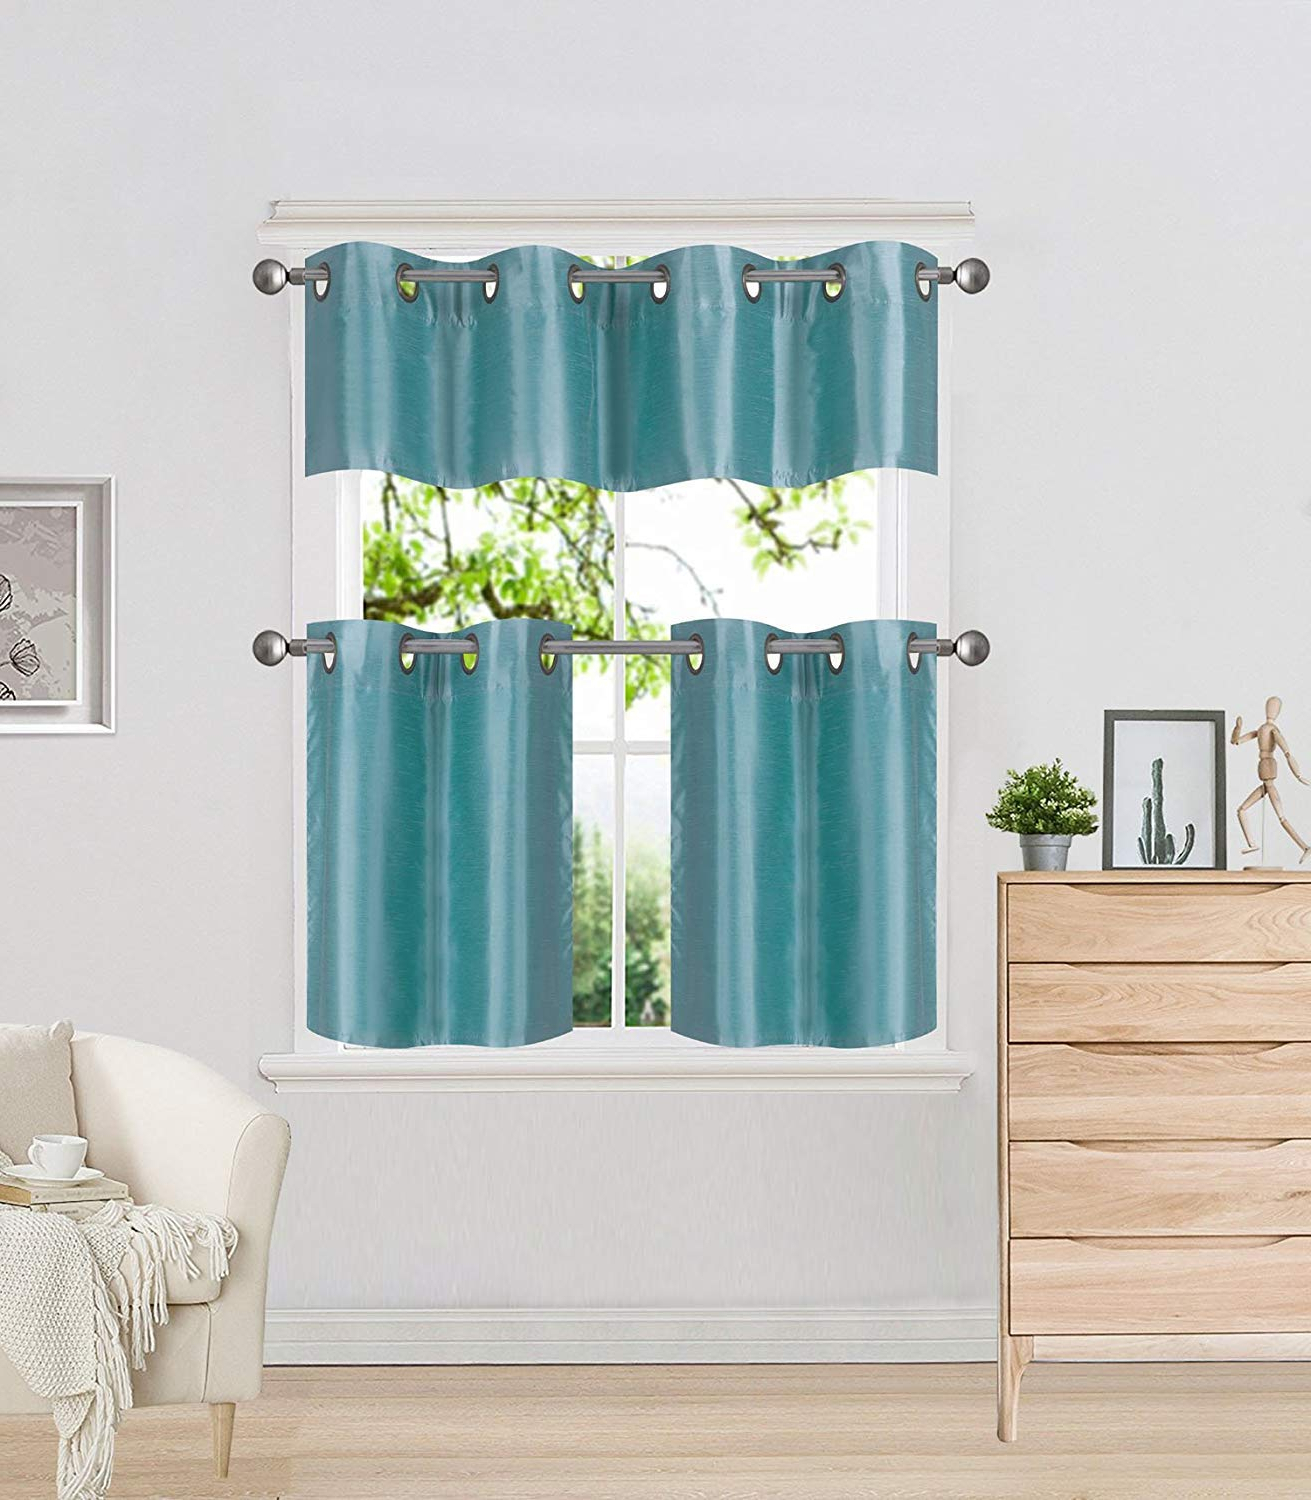 2020 Diamondhome 3 Piece Faux Silk Grommet Lined Thermal Blackout Kitchen Window Curtain Set 2 Tiers & 1 Valance (teal) Pertaining To Faux Silk 3 Piece Kitchen Curtain Sets (View 12 of 20)